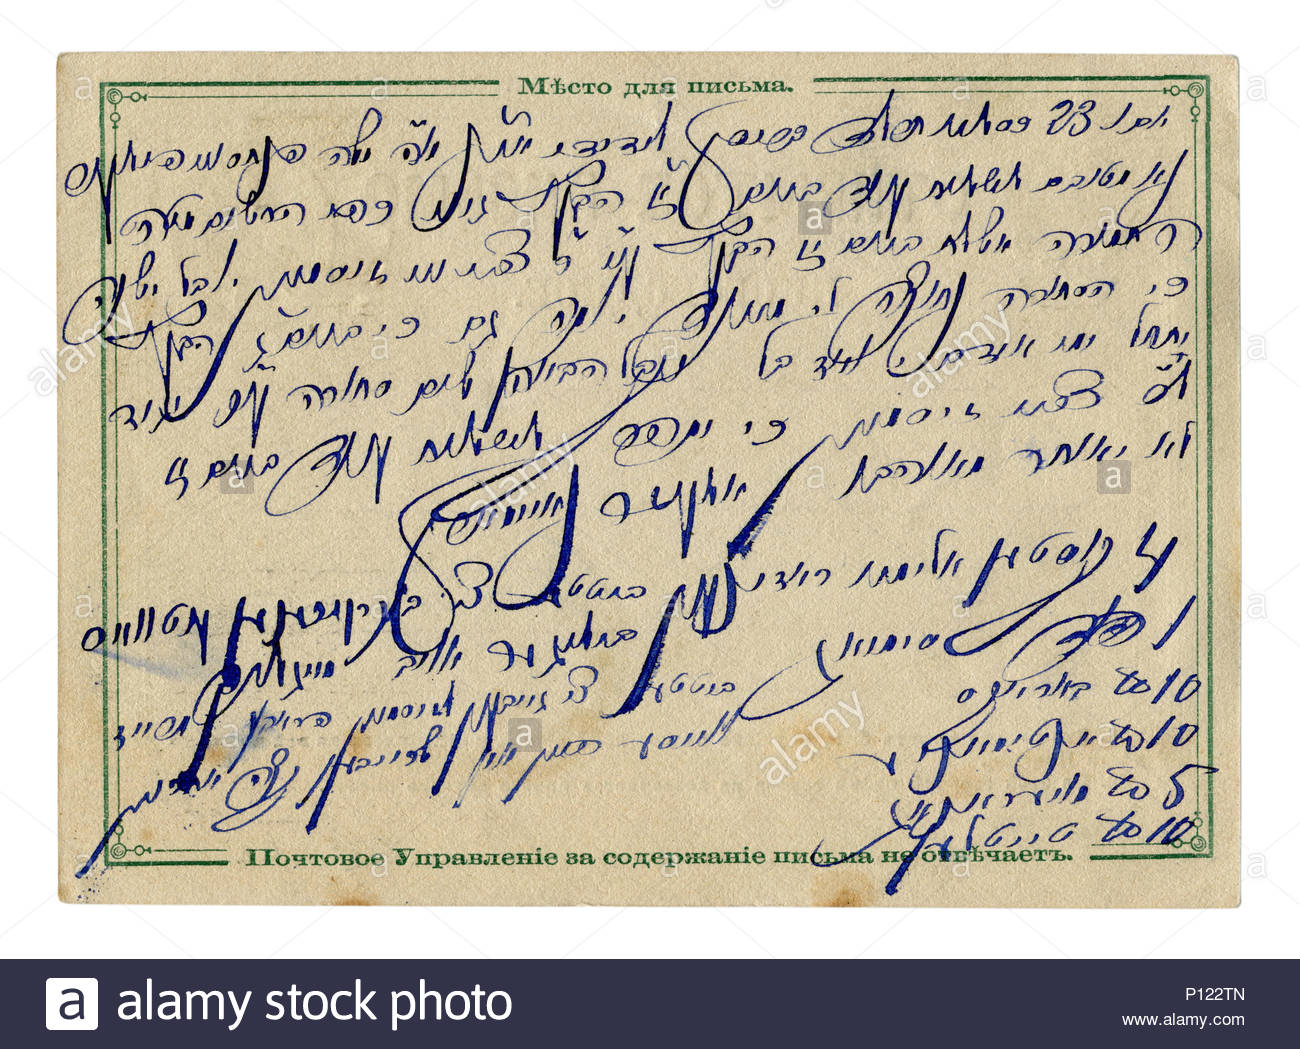 Cursive High Resolution Stock Photography And Images - Alamy